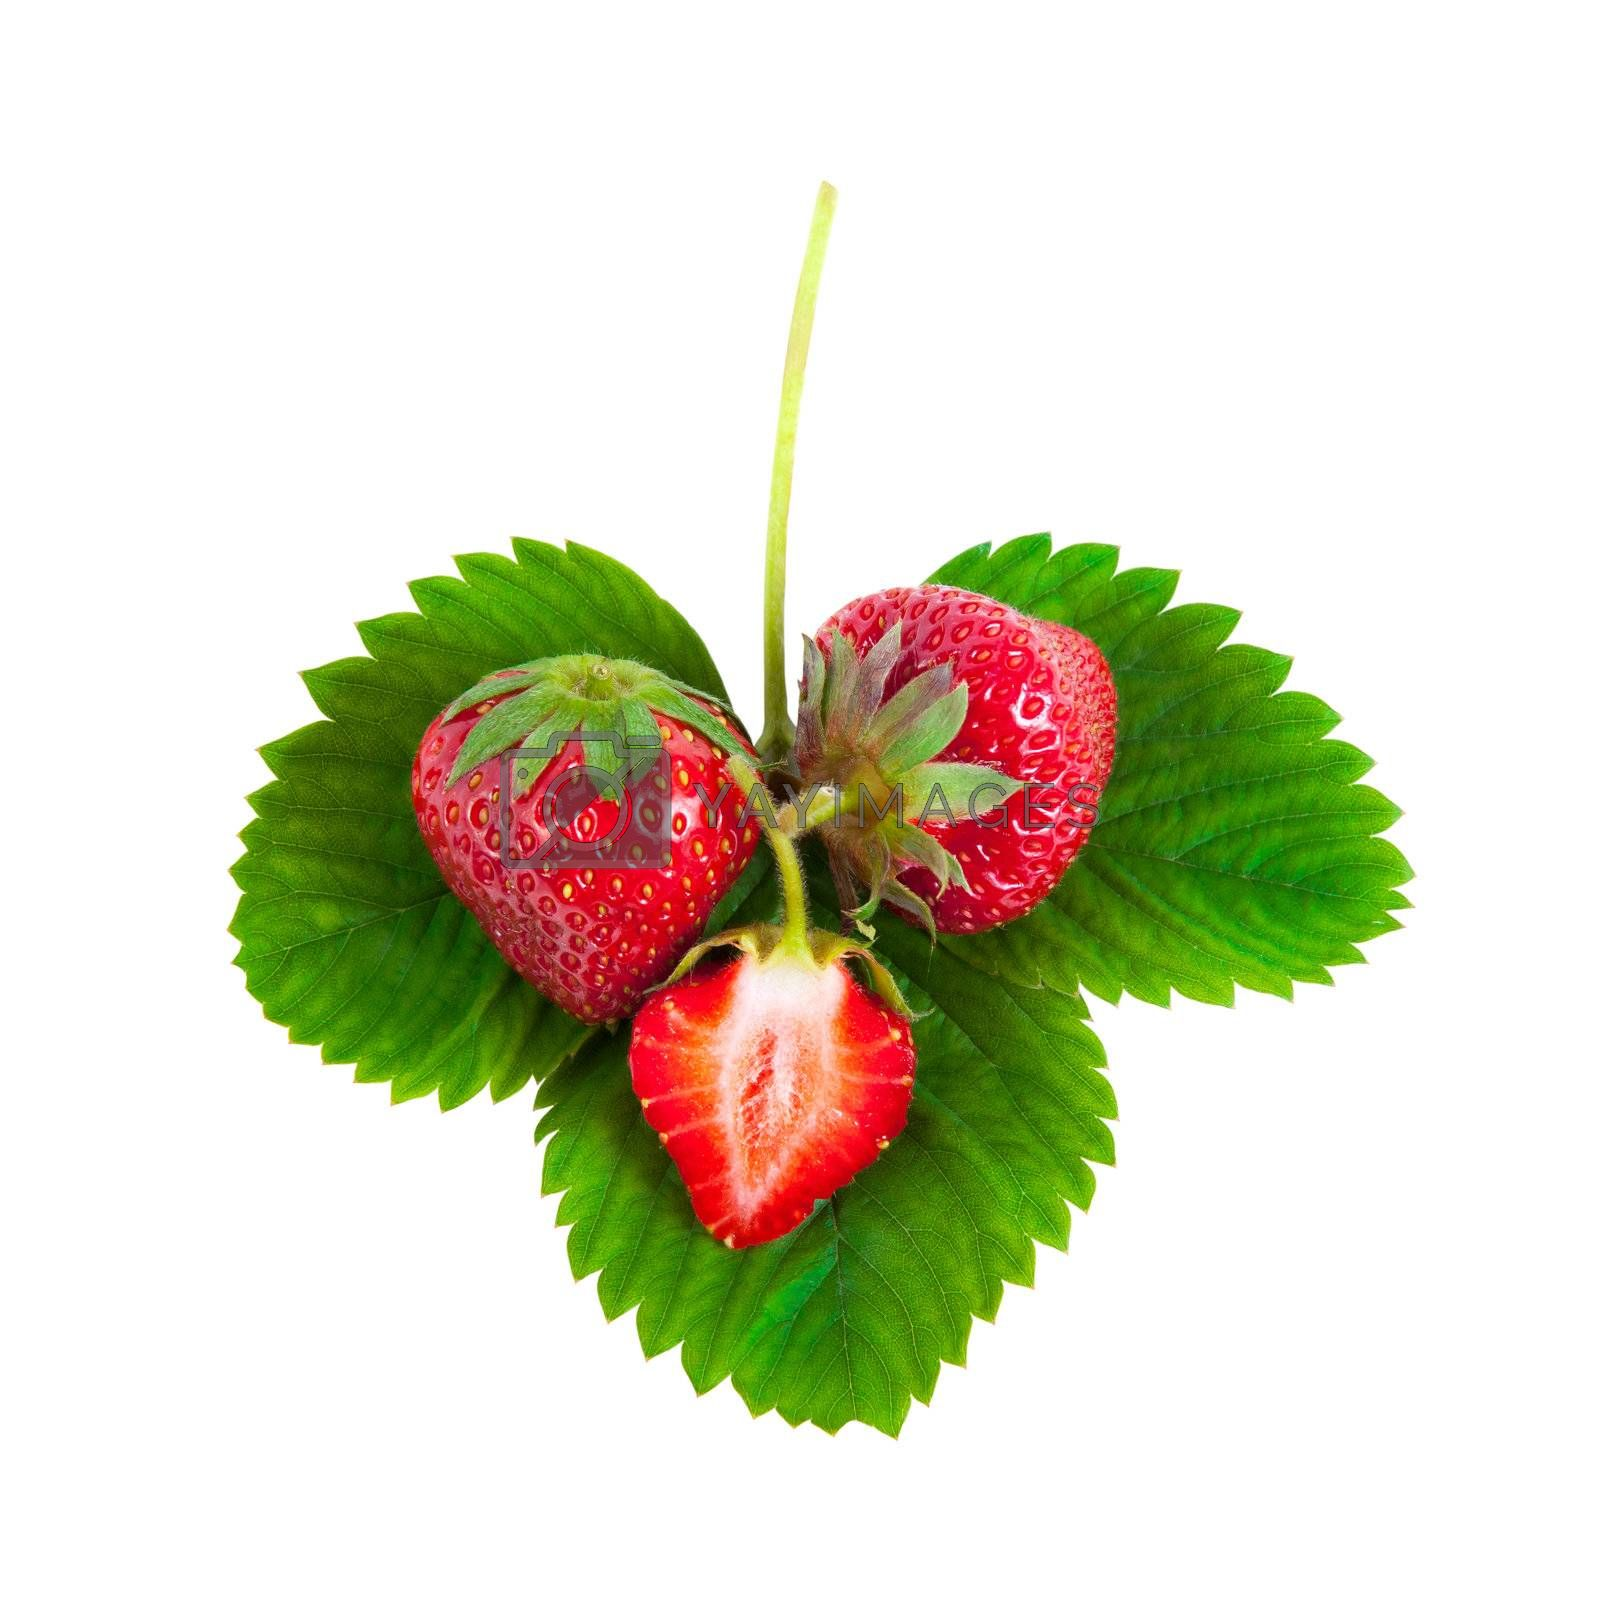 Whole and half strawberries on green leaves isolated on white background